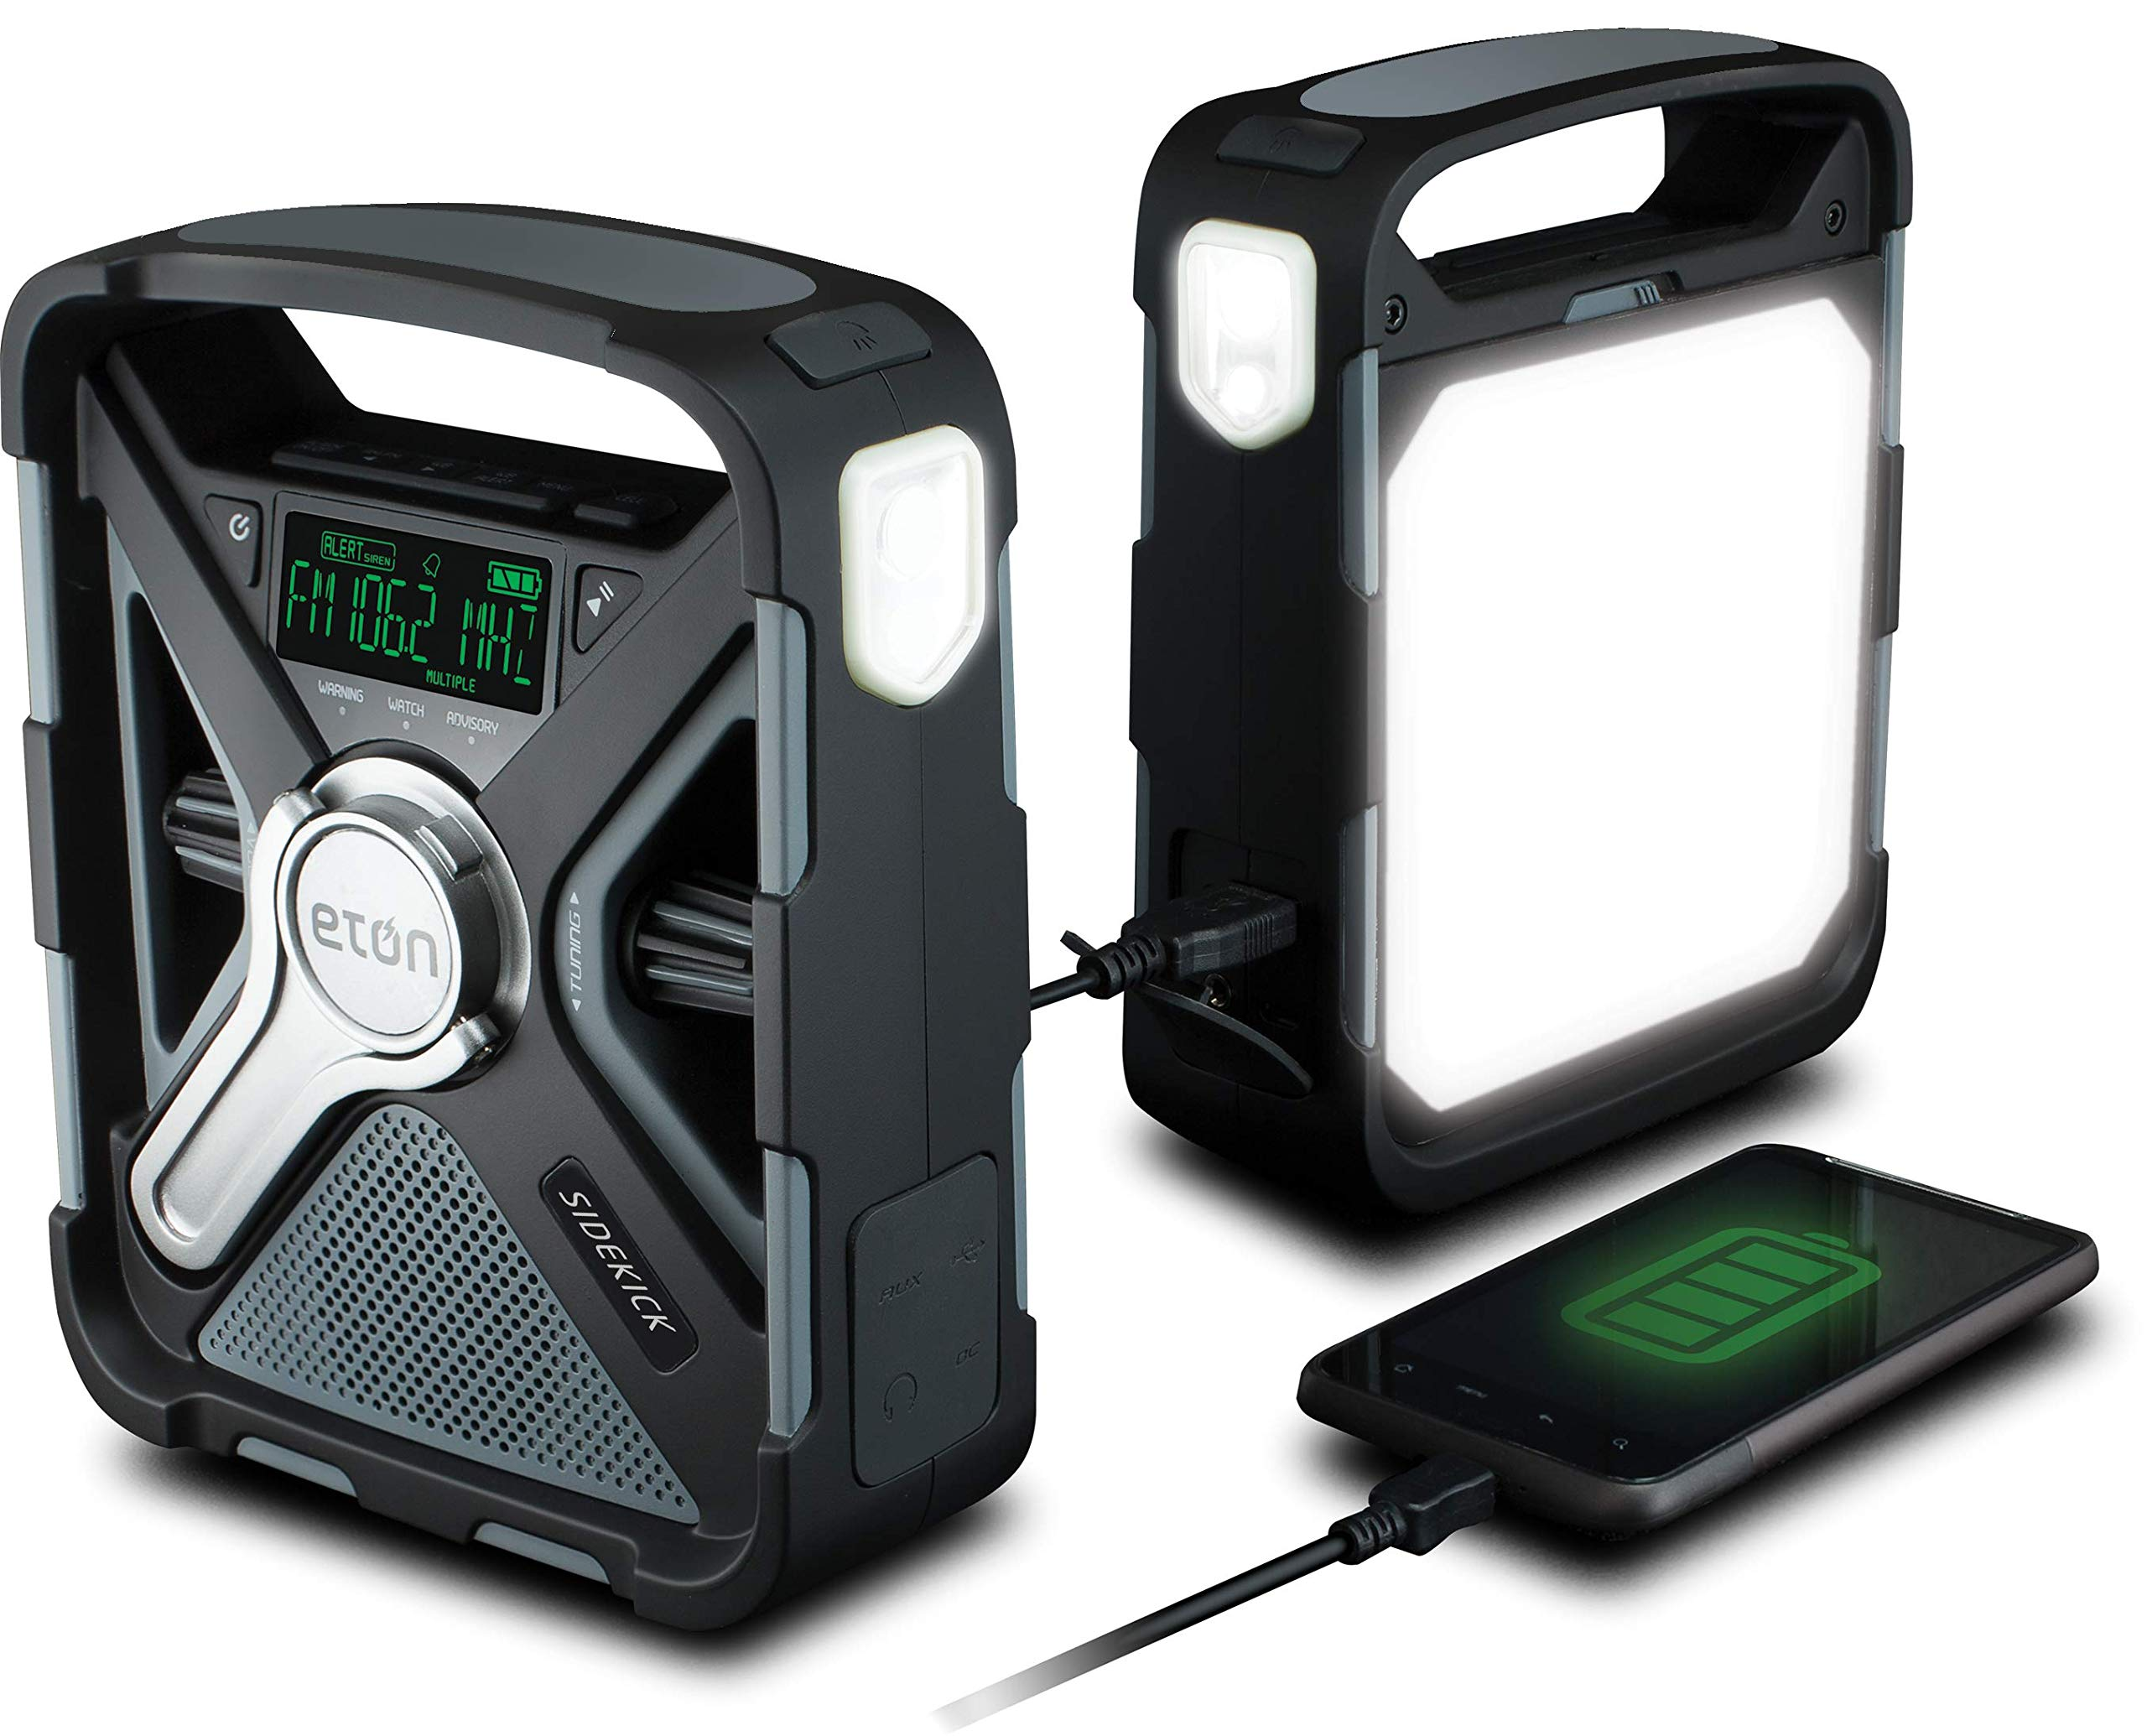 Eton Ultimate Camping AM/FM/NOAA Radio with S.A.M.E Technology, Smartphone Charging, Bluetooth, Giant Ambient Light and Solar Panel, NFRX5SIDEKICK by Eton